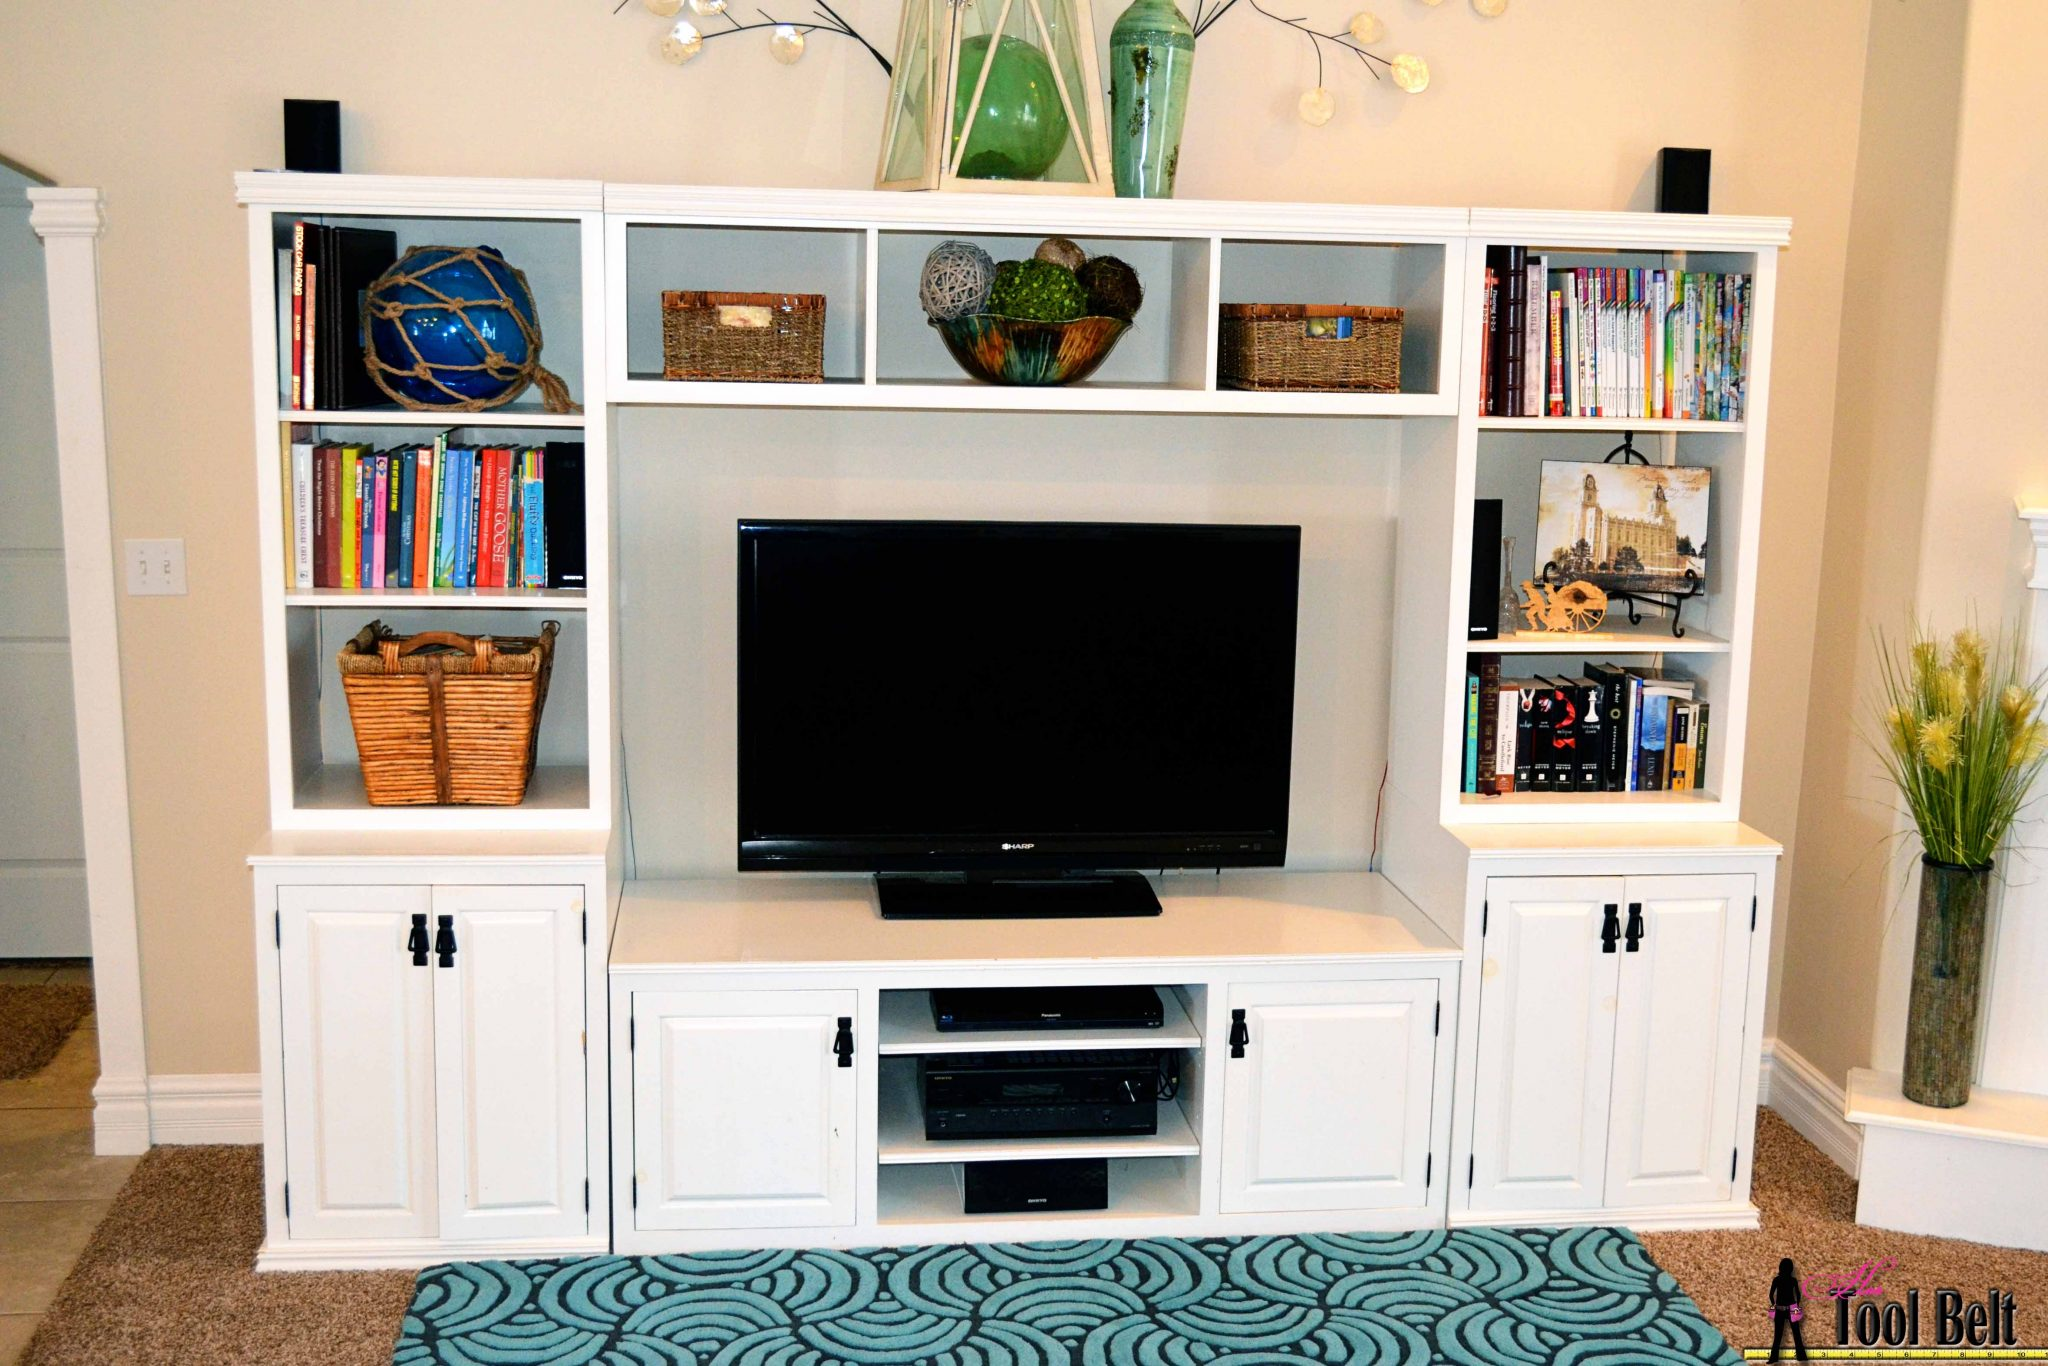 media center free plans - Media Center With Bookshelves